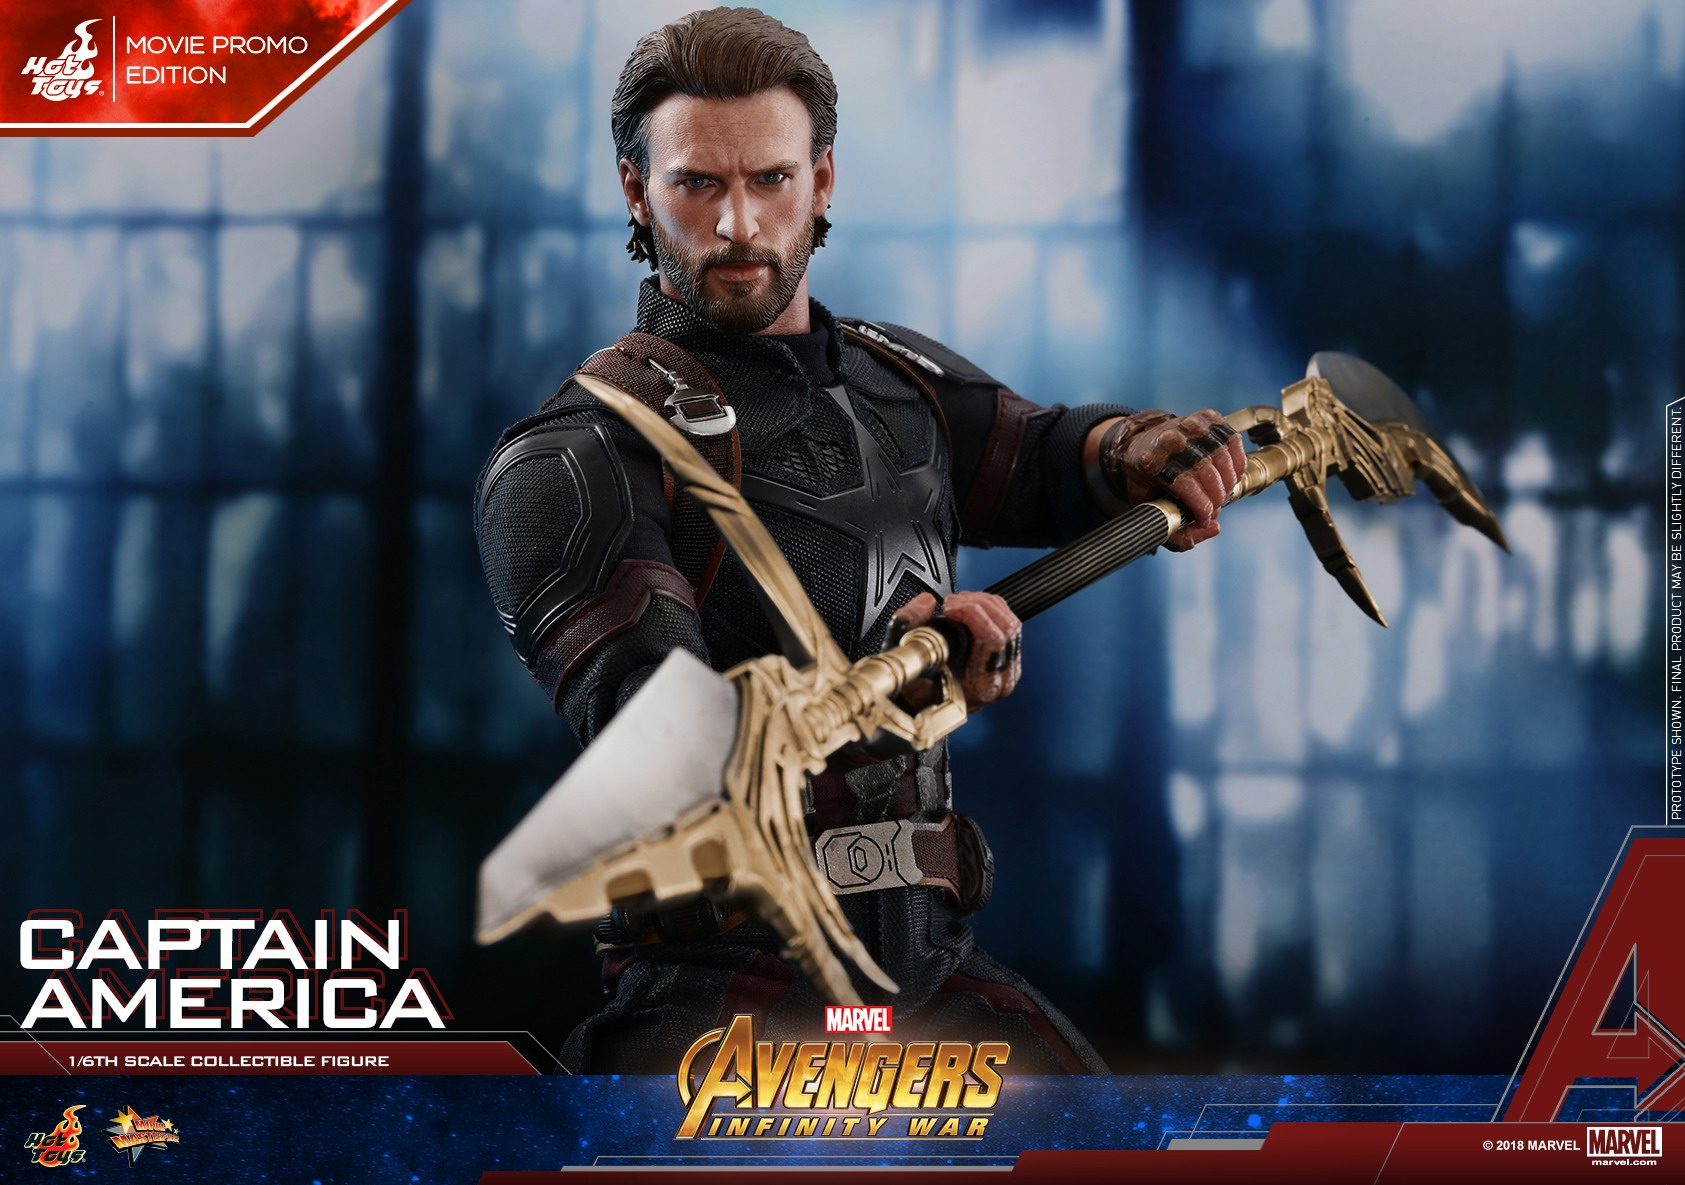 Hot-Toys-AIW-Captain-America-collectible-figure-Movie-Promo_Mystery-Weapon-PR02.jpg